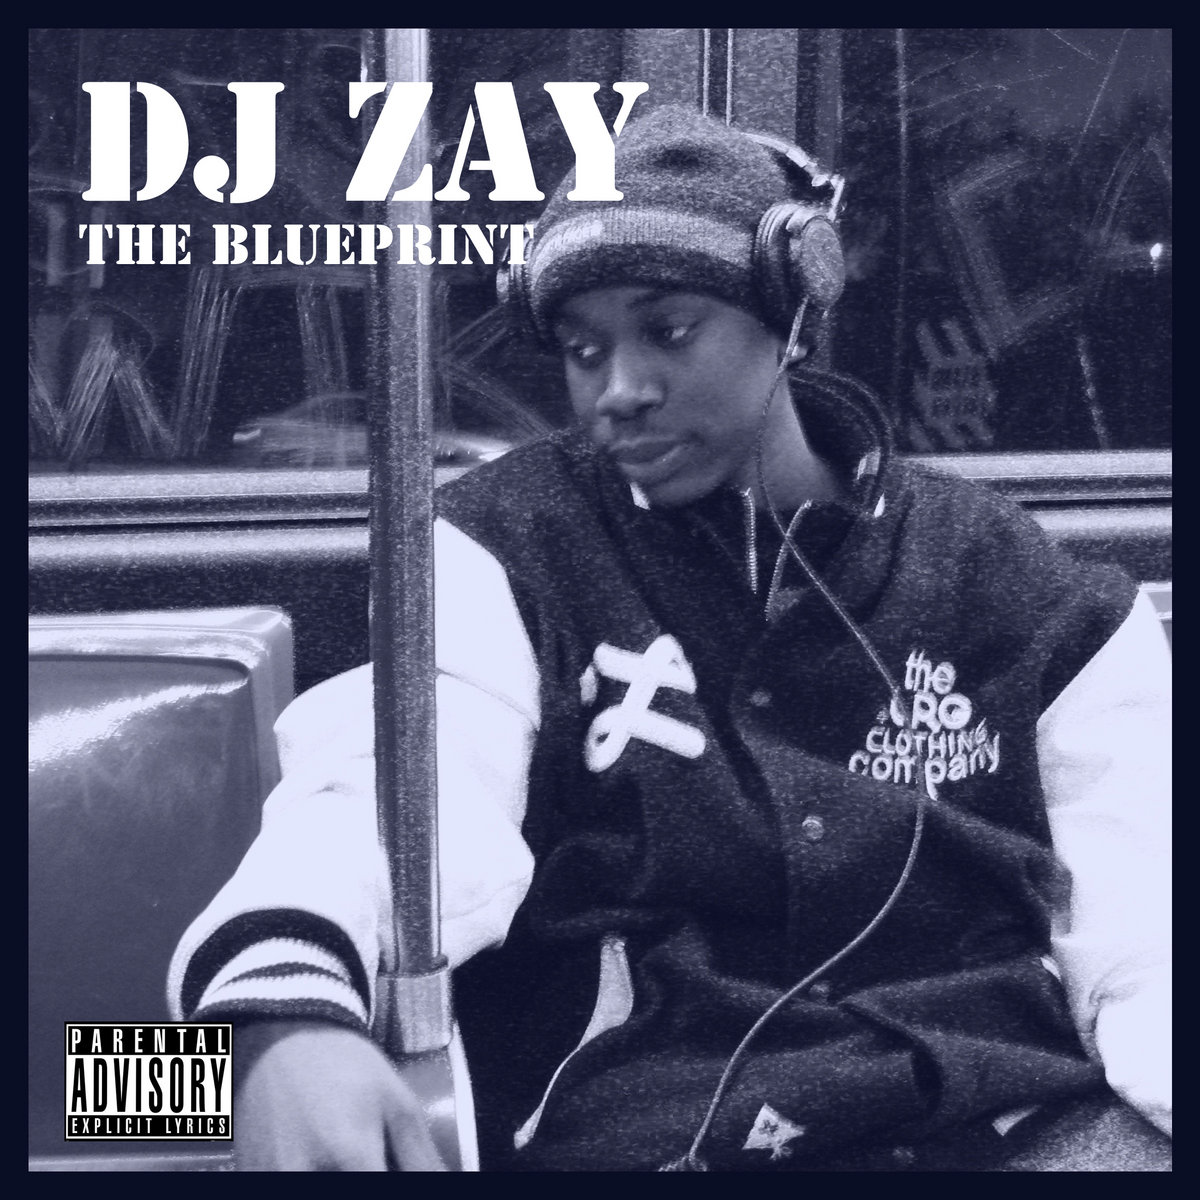 Hola hovito dj zay remix dj zay from the blueprint a fair alternative by dj zay malvernweather Gallery